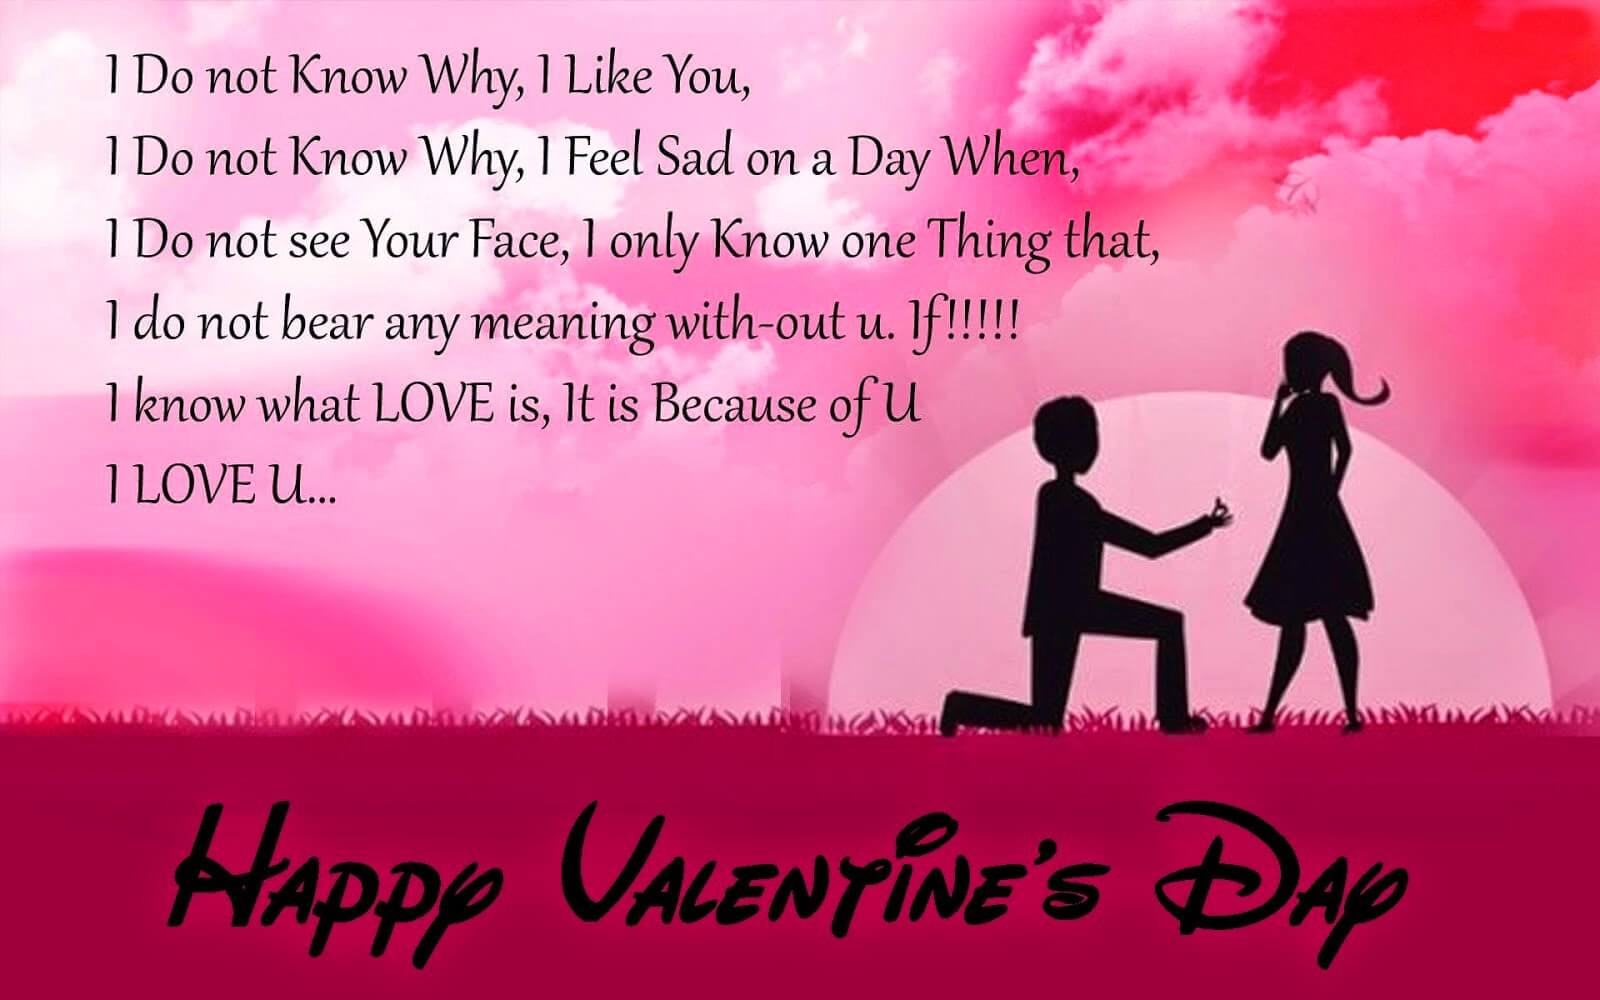 Happy Valentines day Love Poem Image Wallpaper Wishes For GF, BF